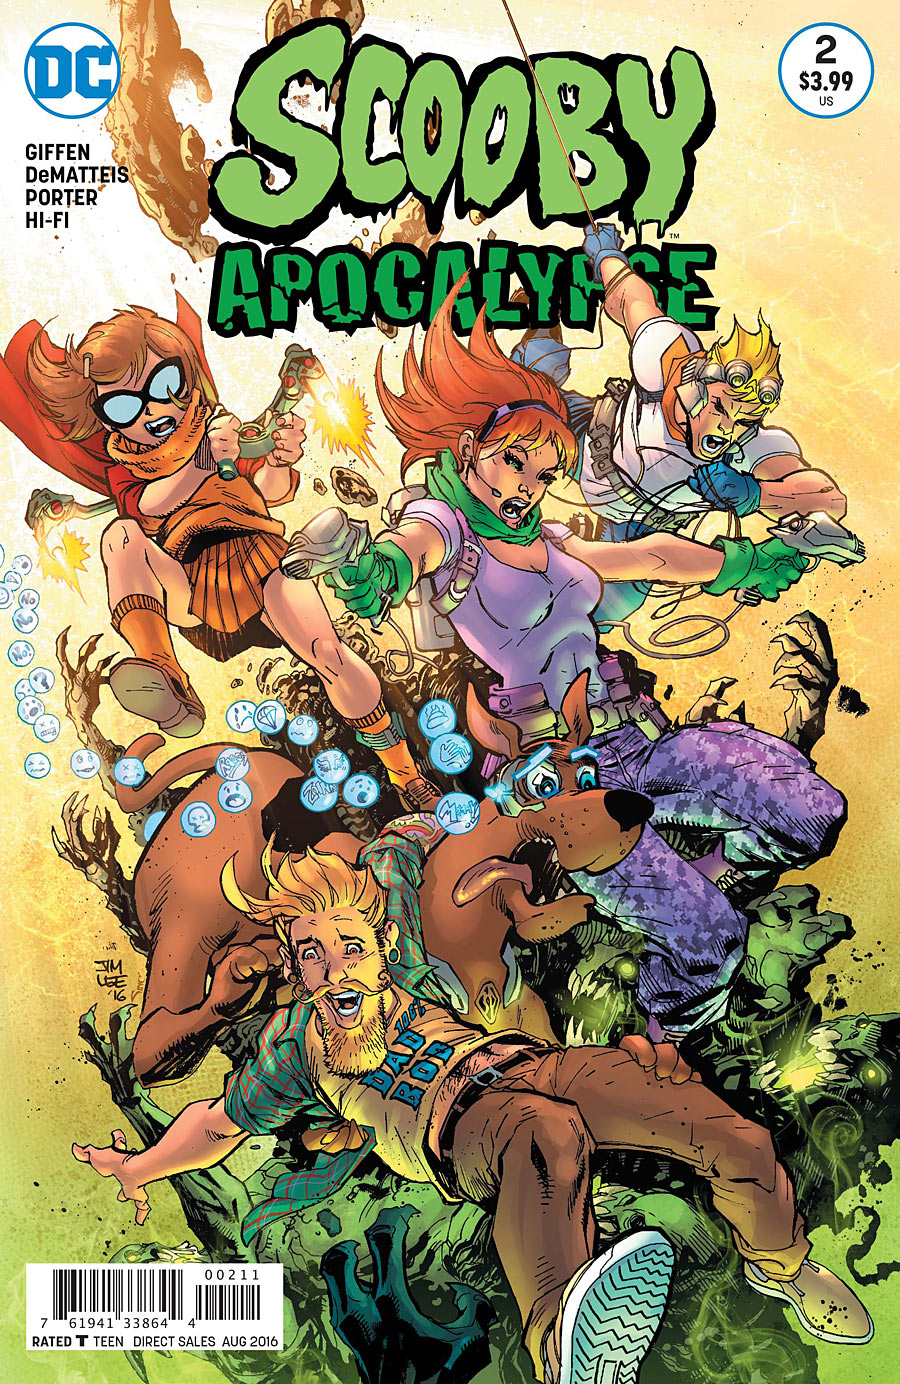 comics review  scooby apocalypse 2